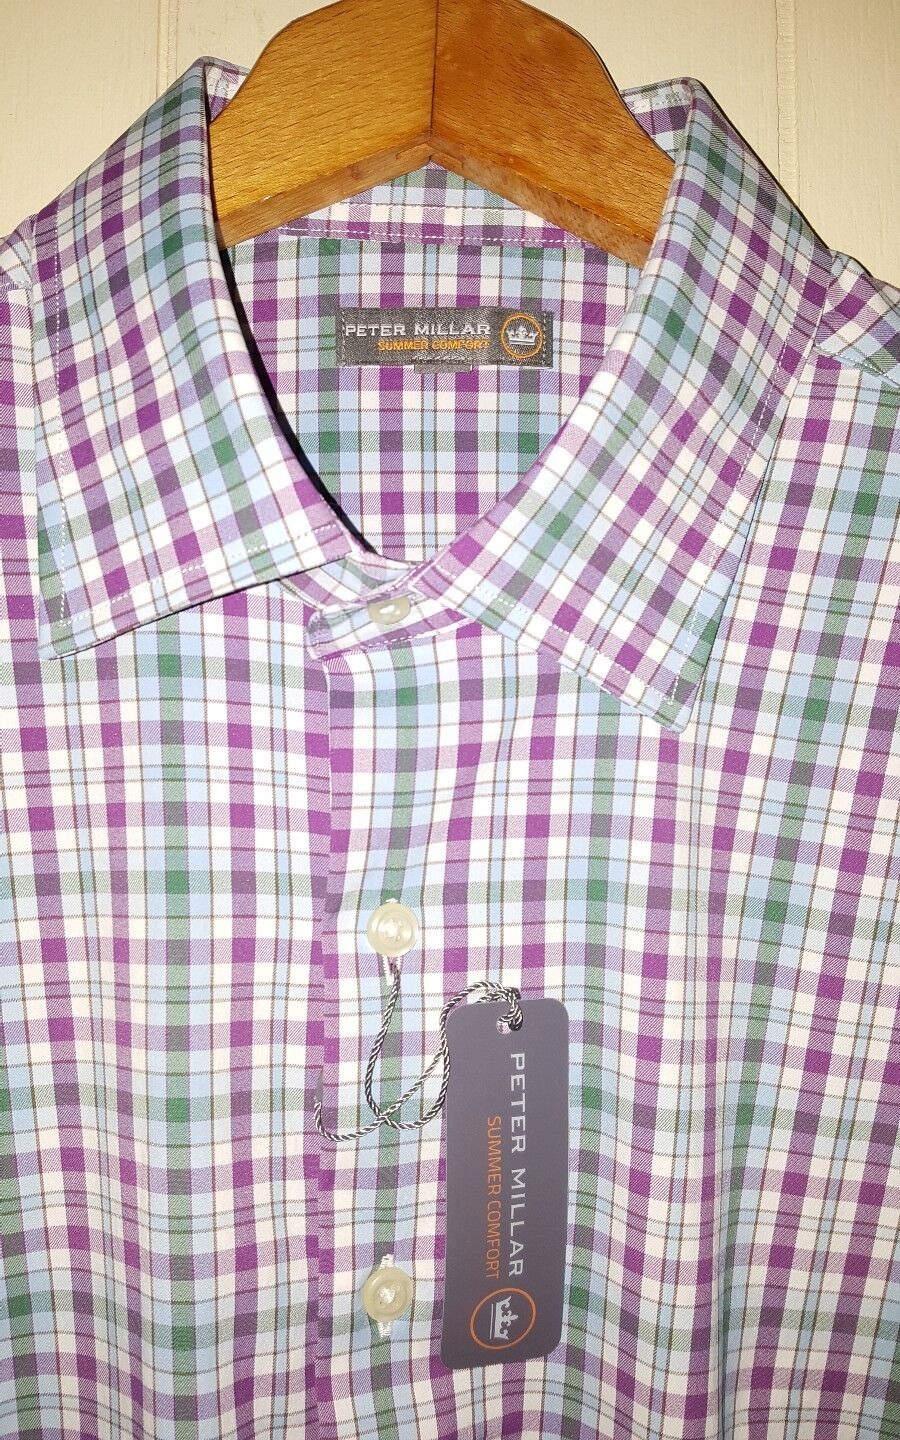 Peter Millar Crown Sport Button Shirt Men's Large NWT  Multi-color